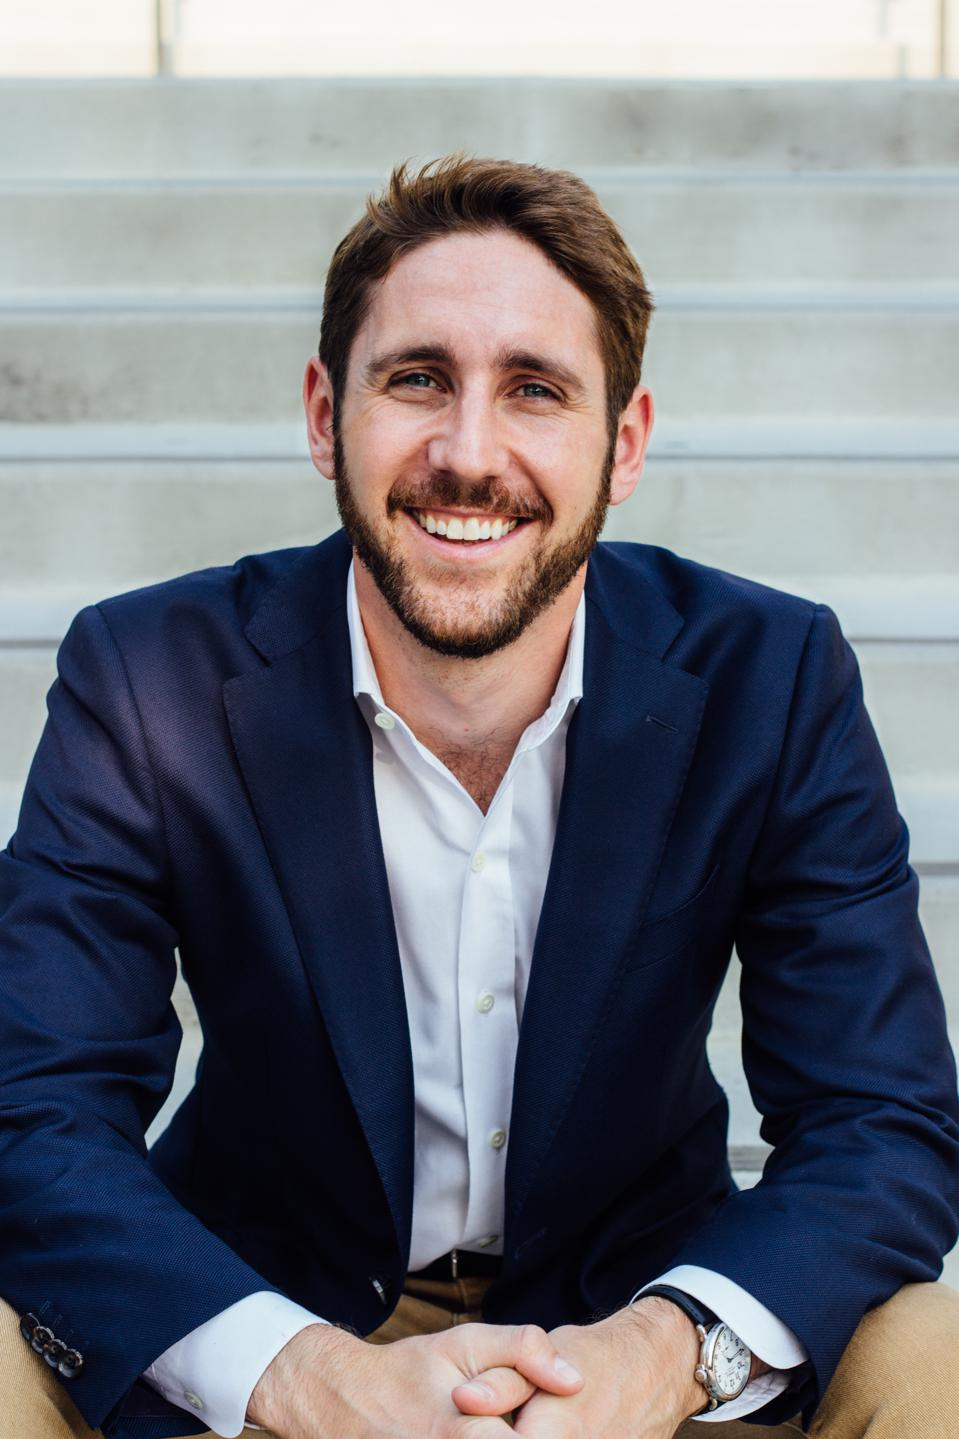 Convex Helps Commercial Service Businesses Find New Customers At Scale